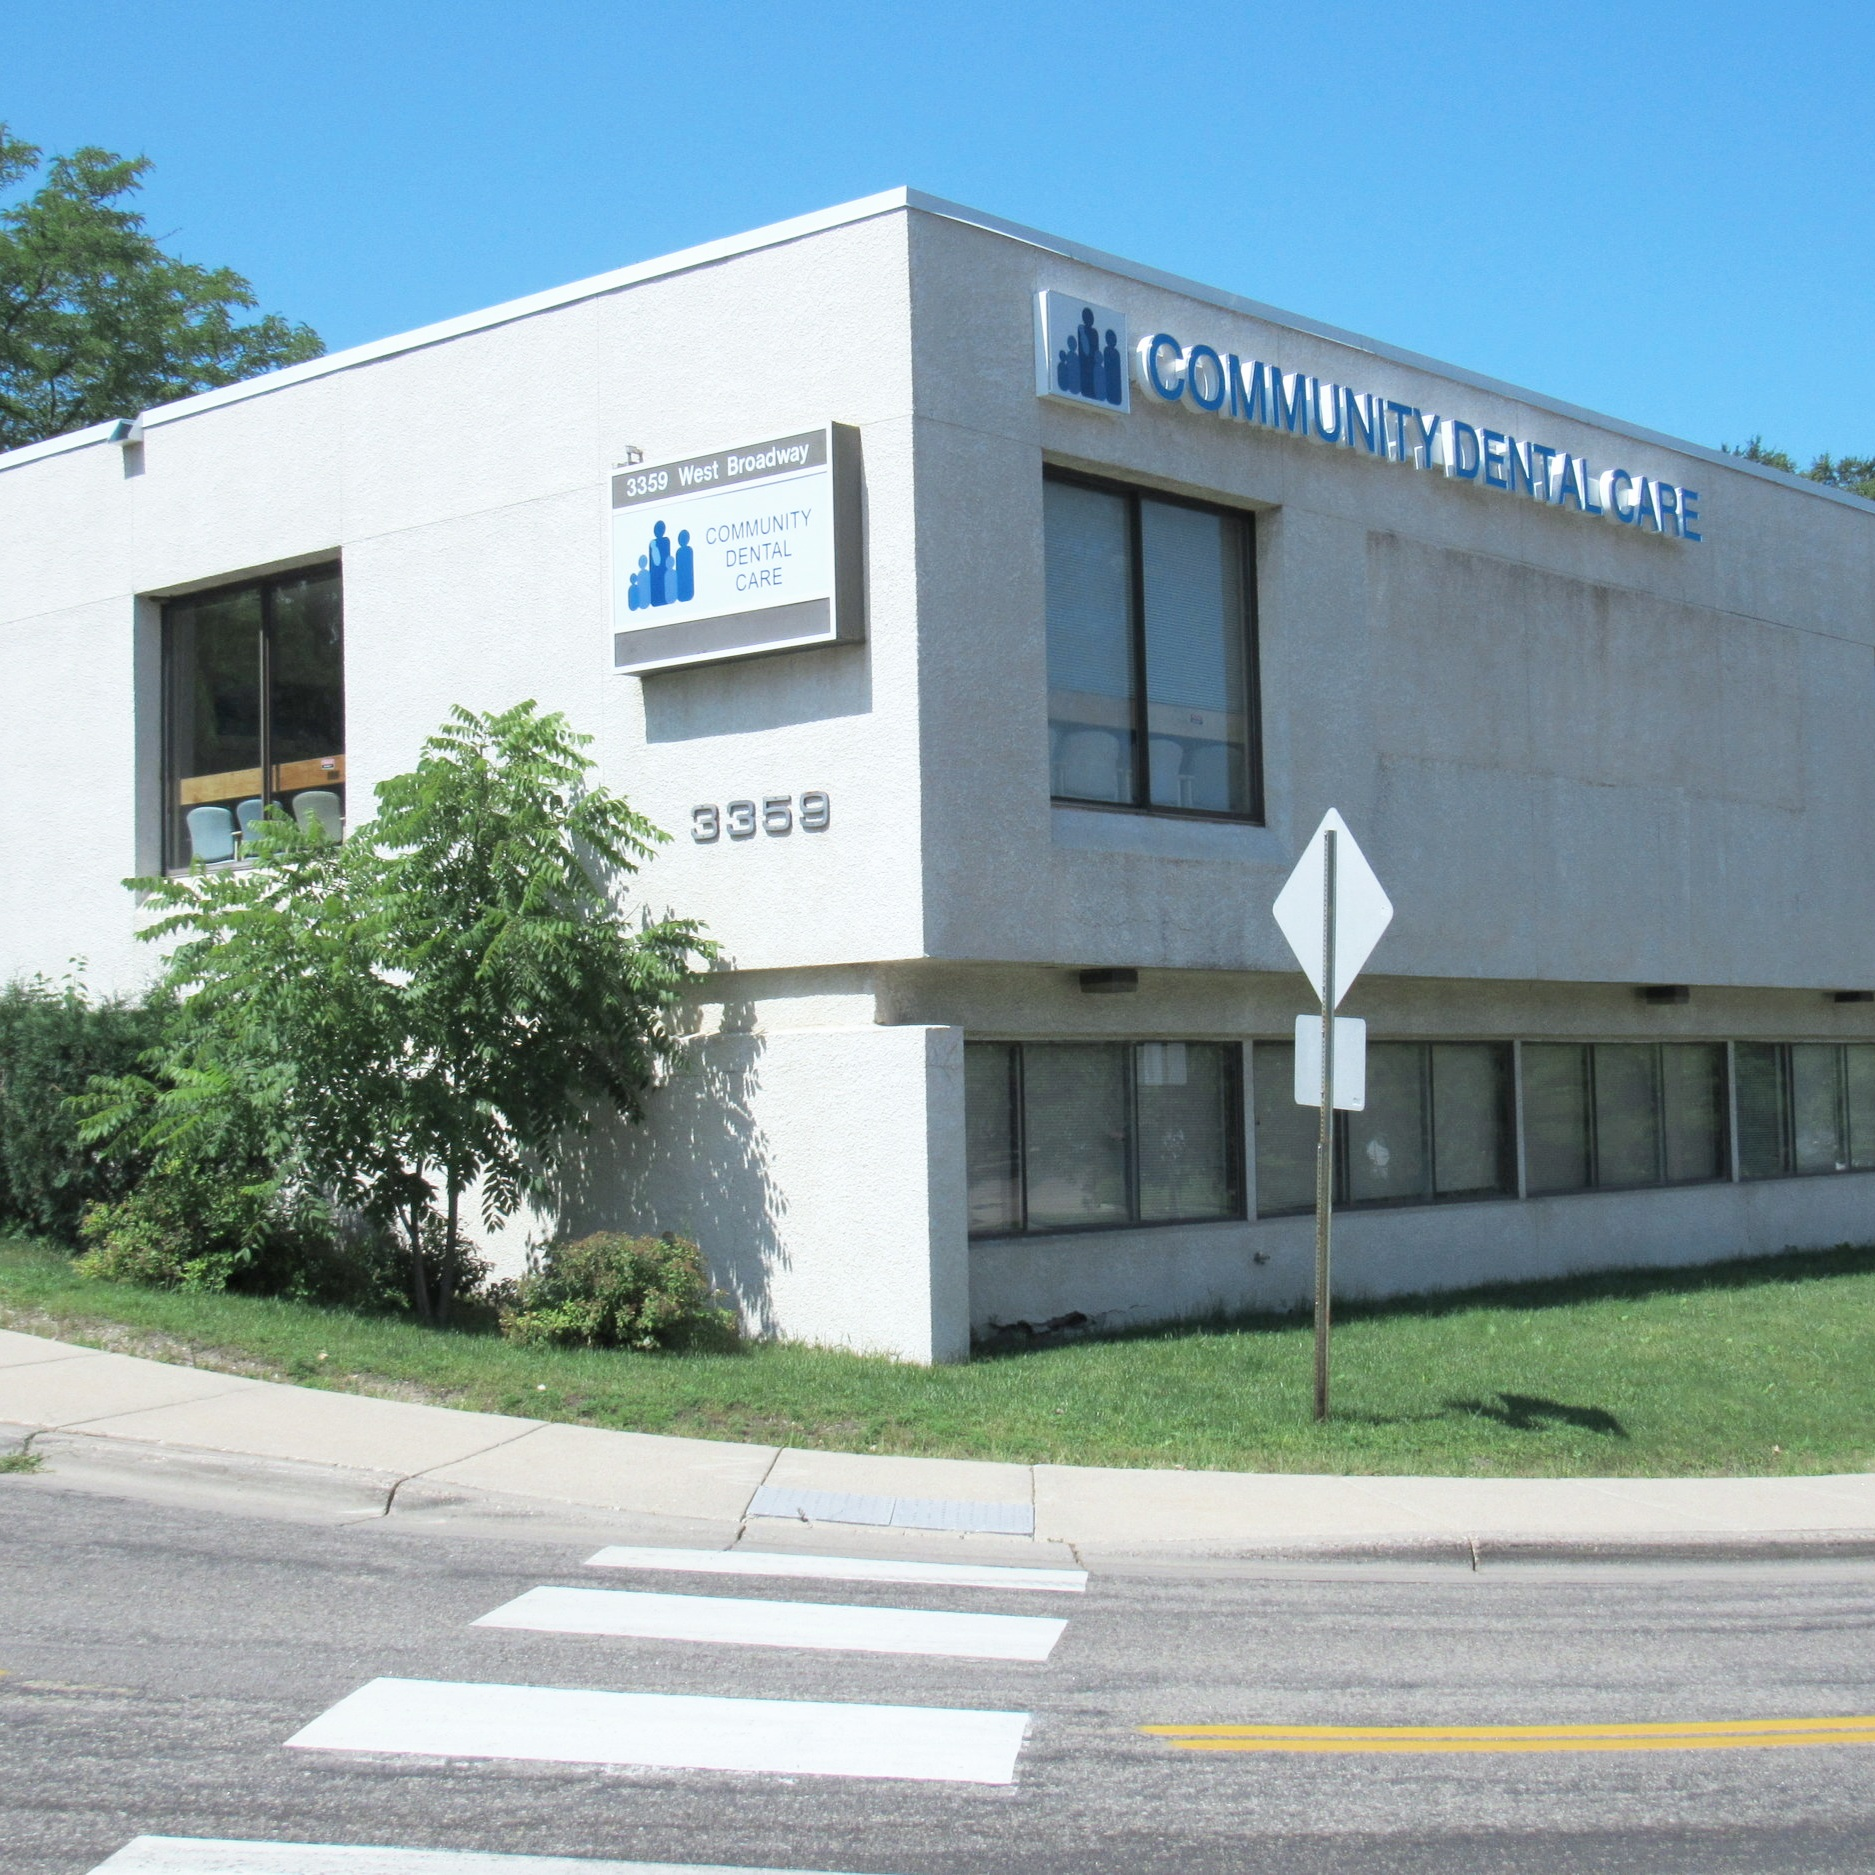 Robbinsdale Clinic